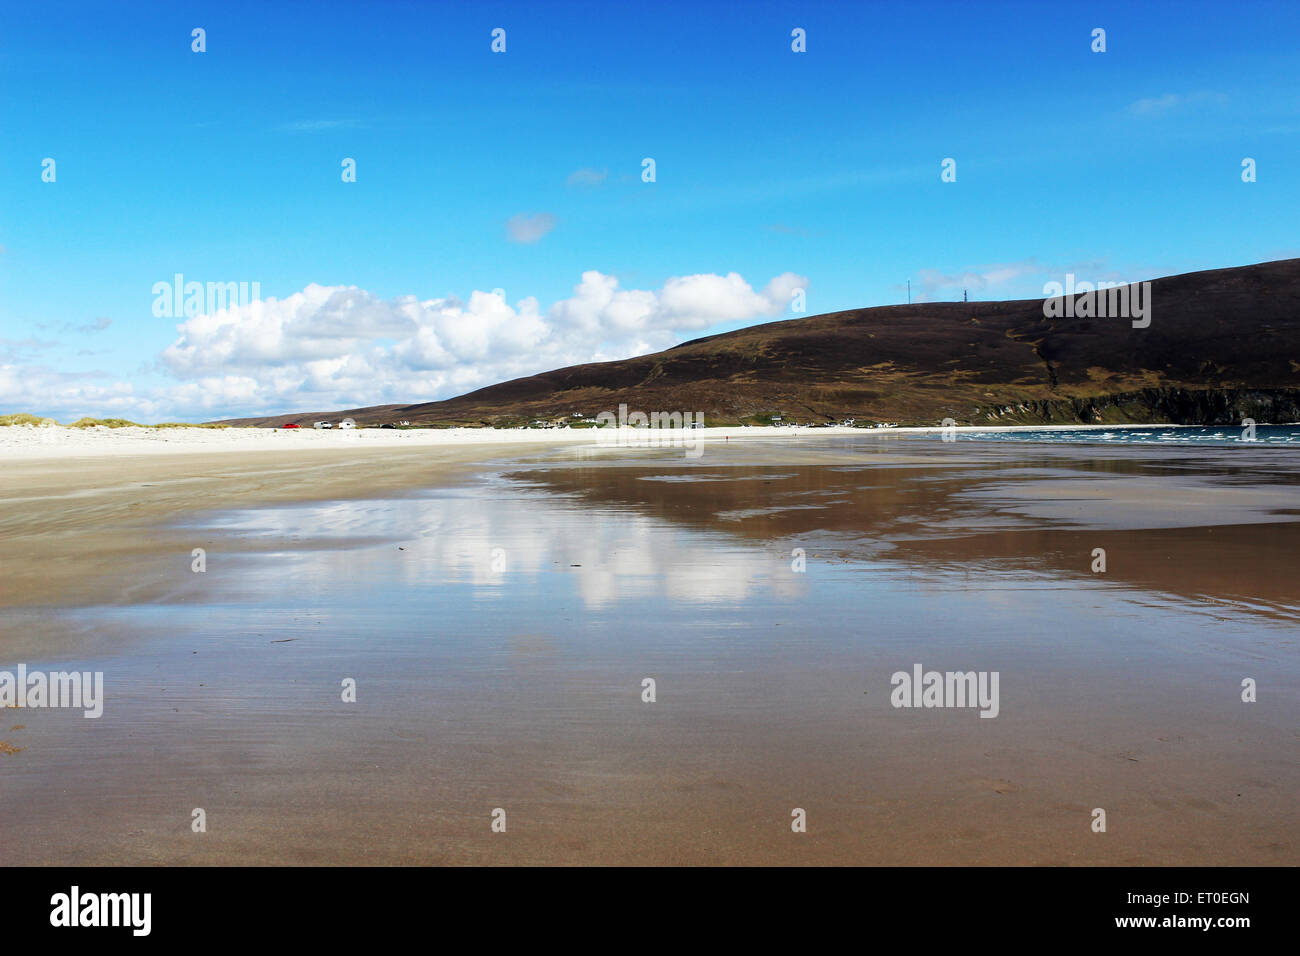 Irish beach, landscape - Stock Image